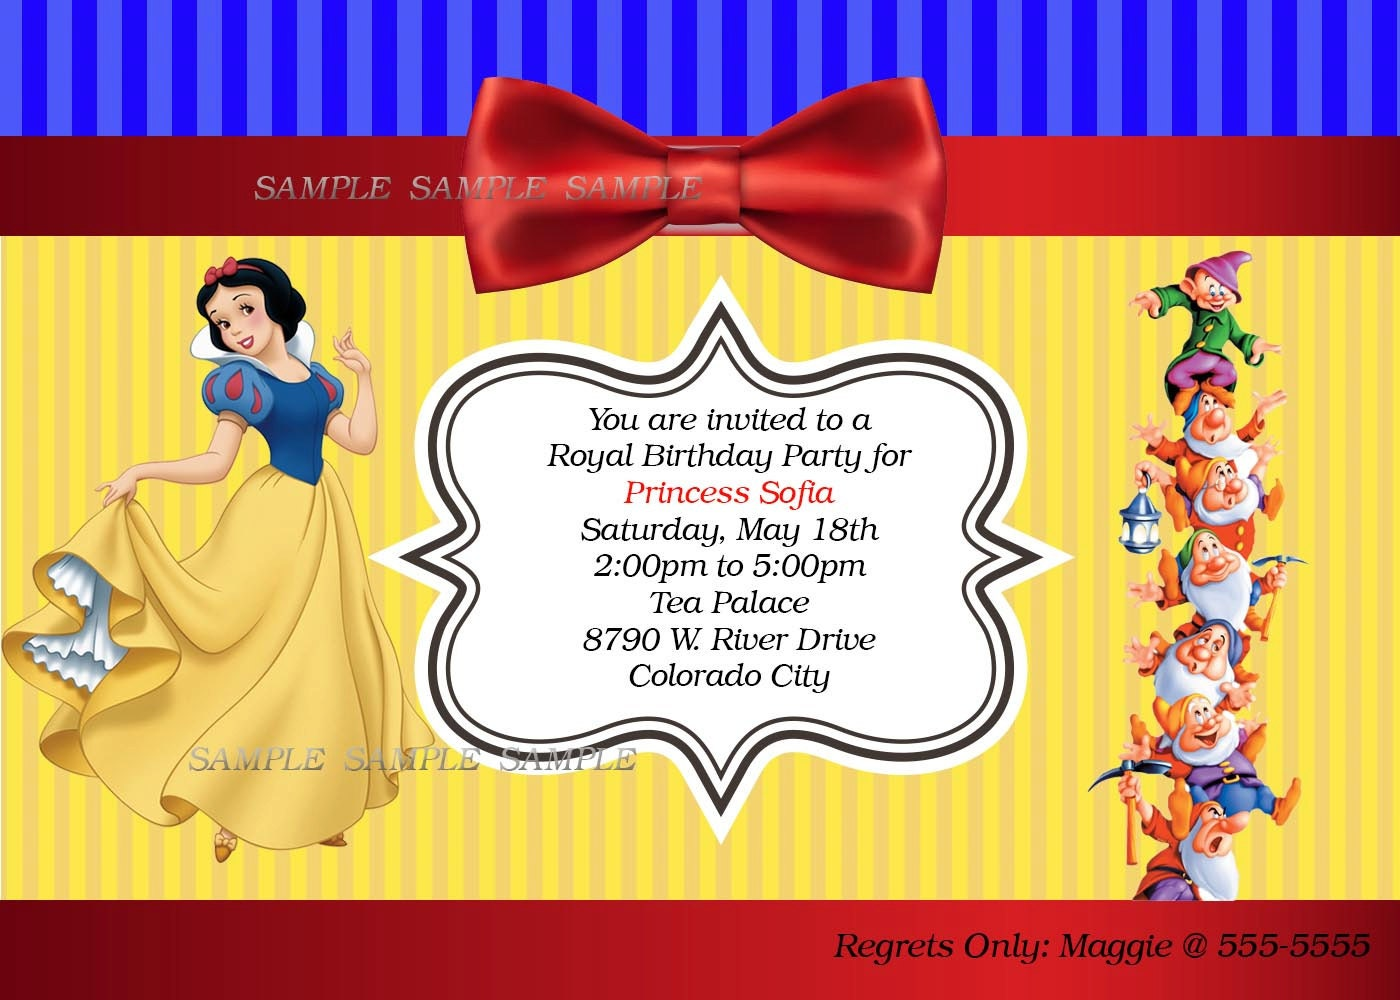 Staples Birthday Invitations was amazing invitations ideas